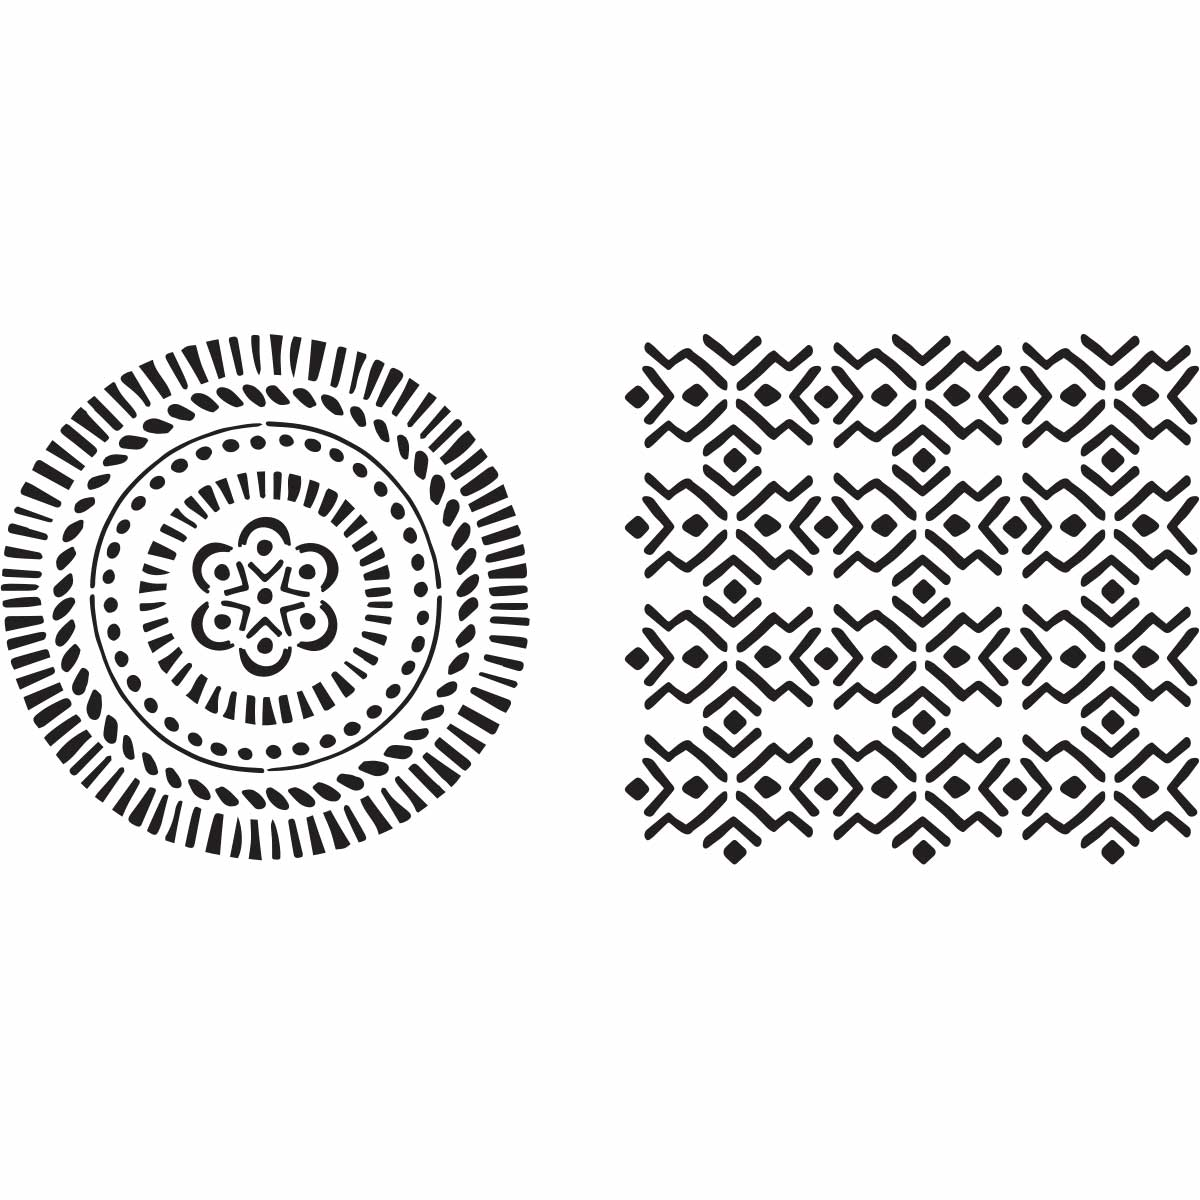 Fabric Creations™ Adhesive Stencils - Tribal, 6